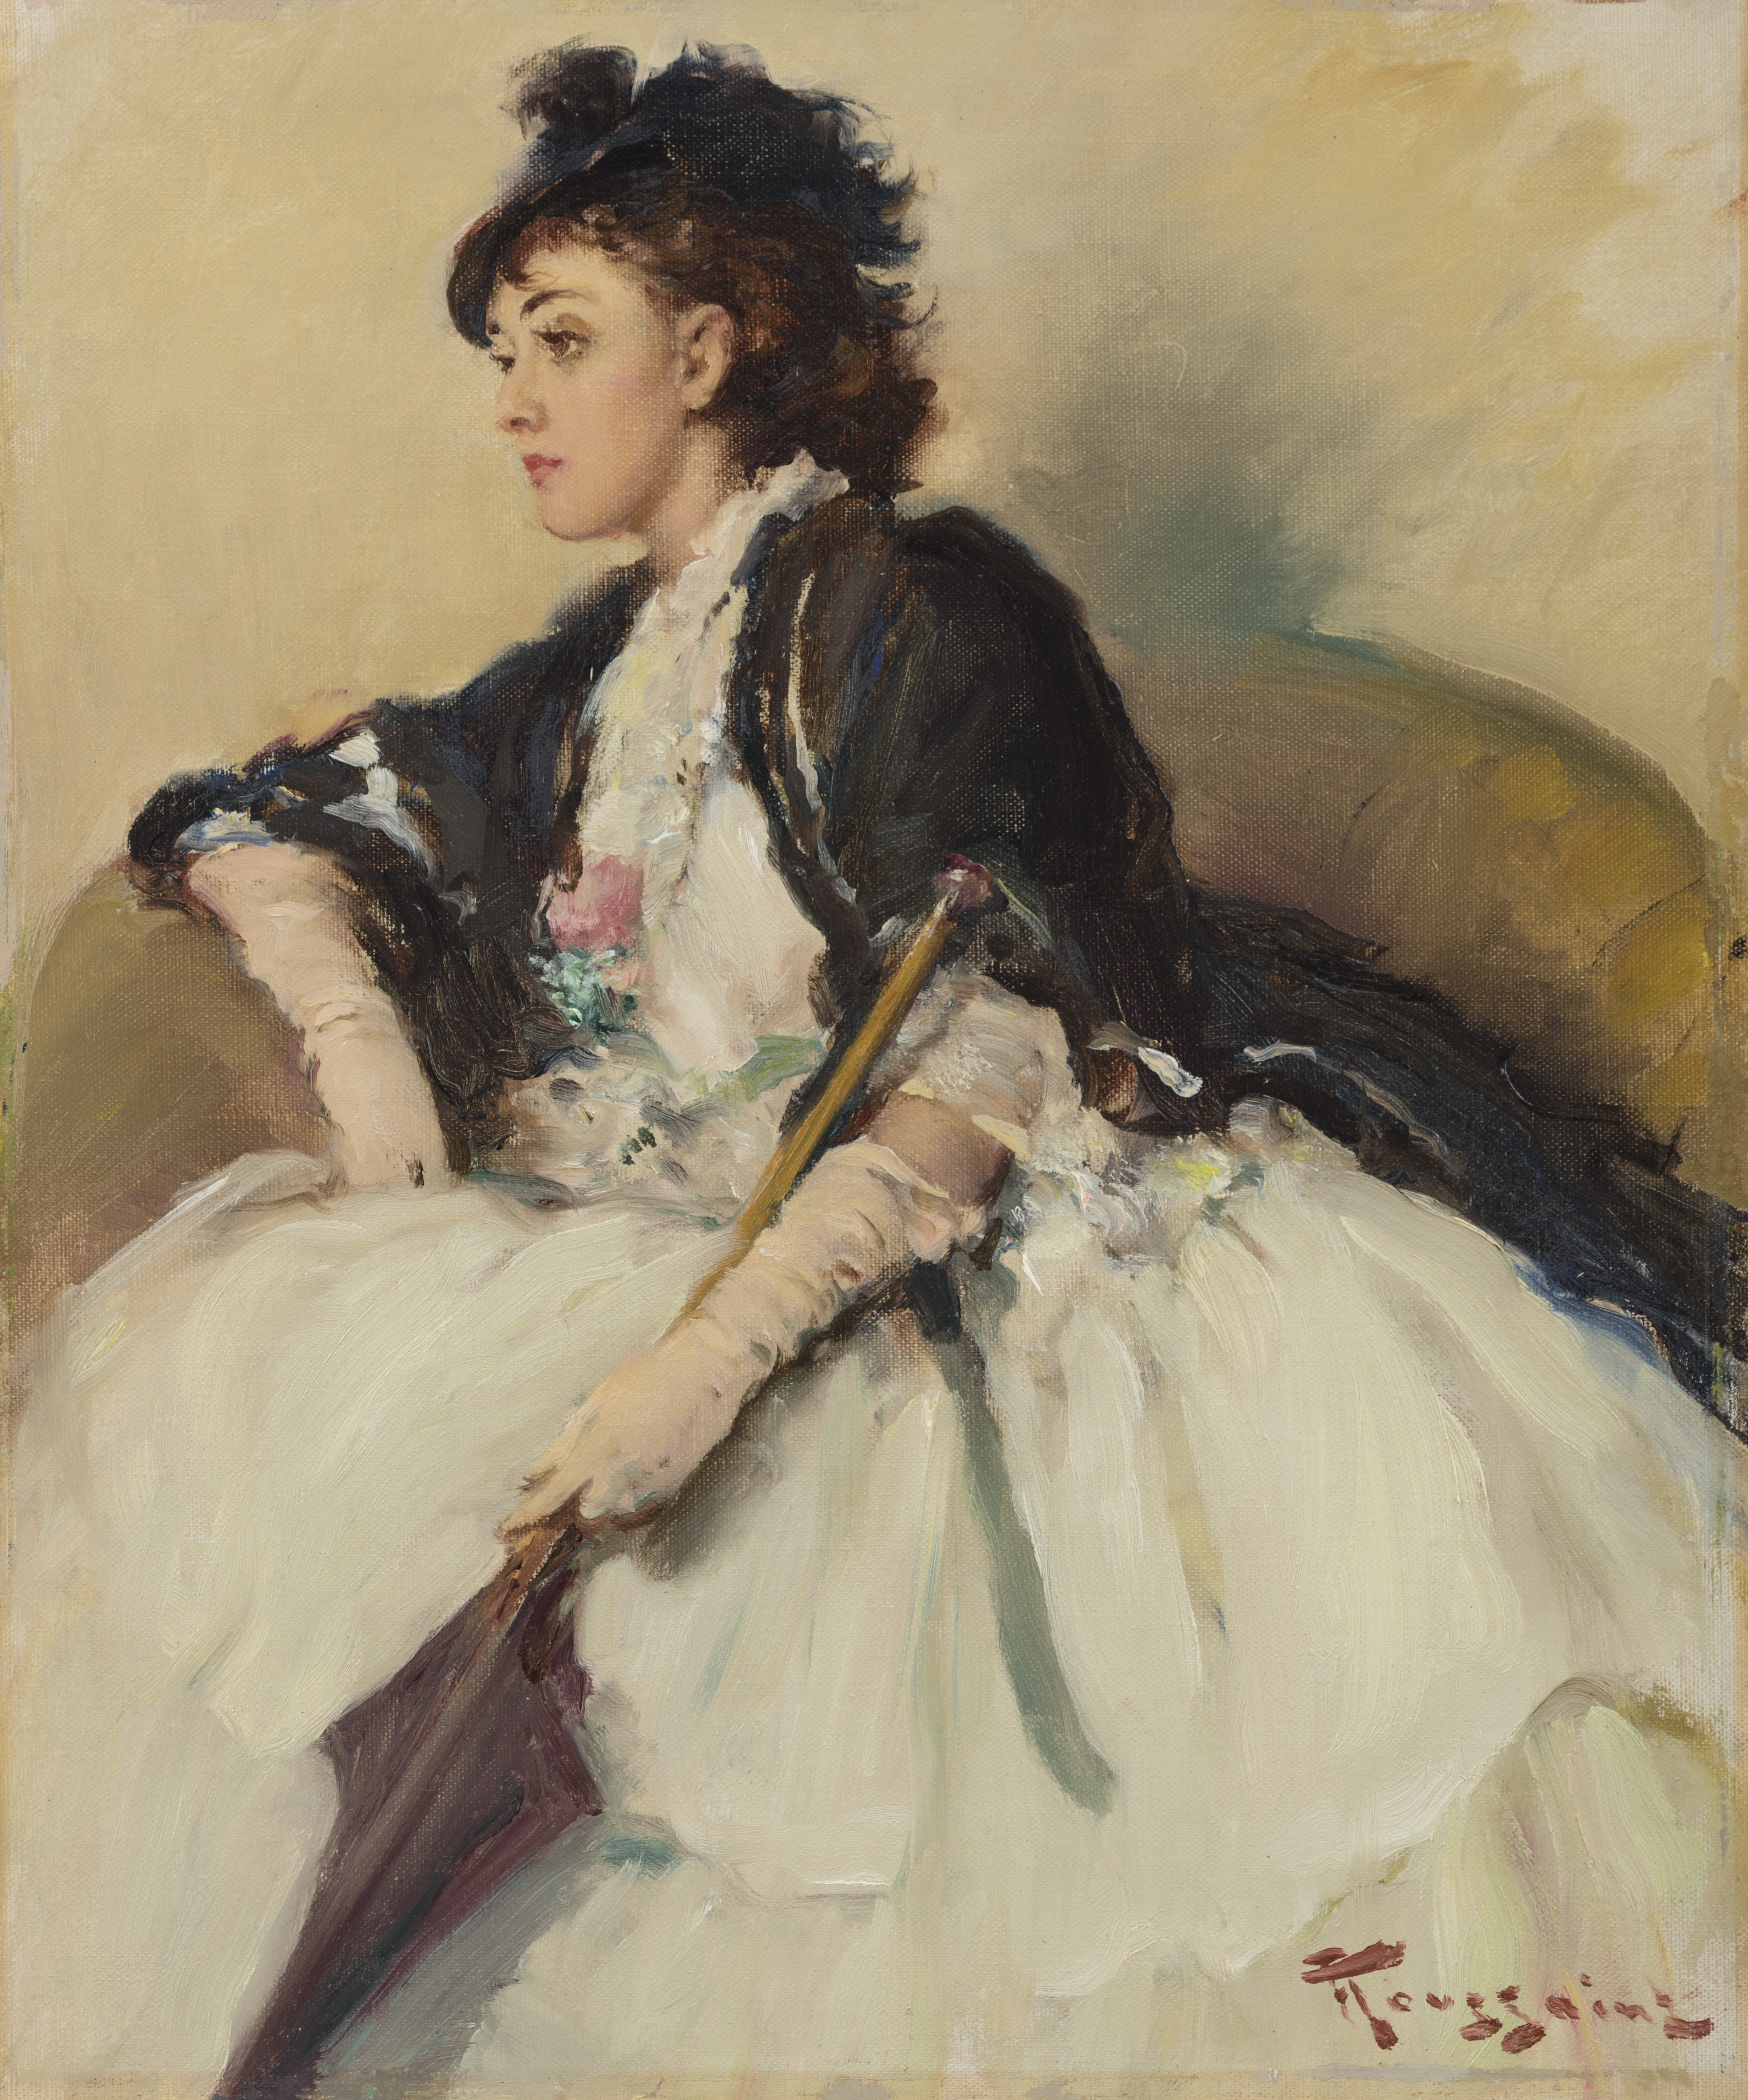 Fernand Toussaint | An elegant lady with a parasol | Kunsthandel Bies | Bies Gallery